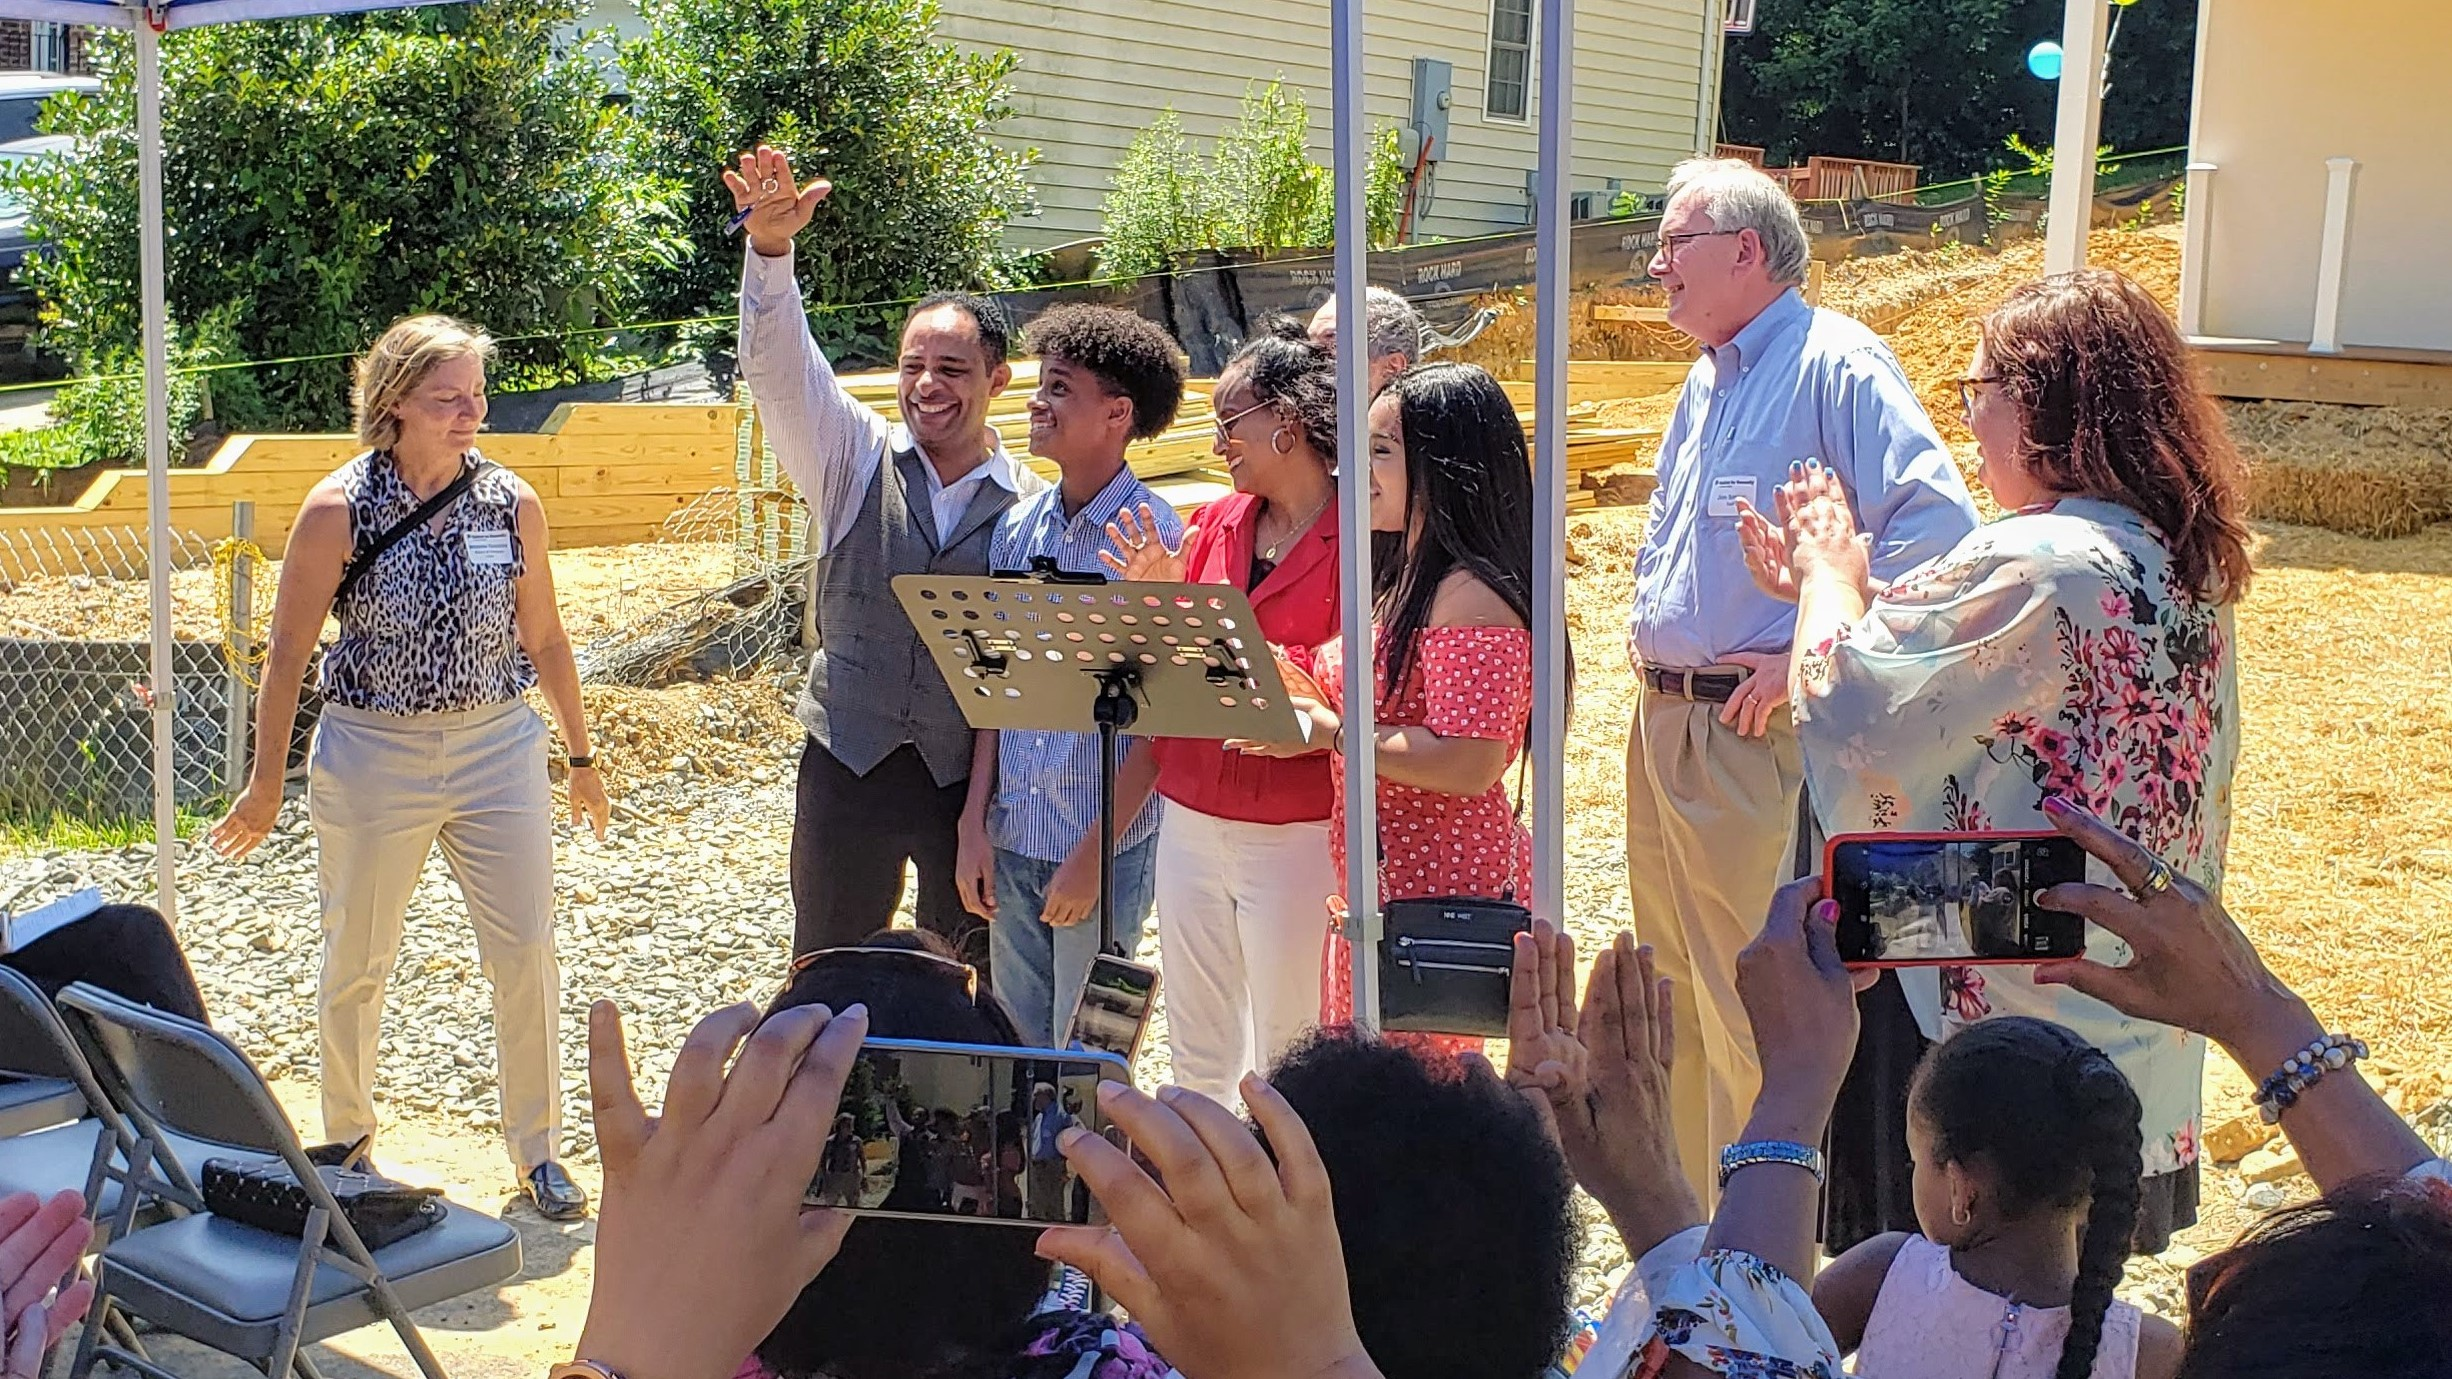 Tesfaye joyfully raises the keys to his new Habitat for Humanity home as a crowd applauds during a dedication ceremony in June.